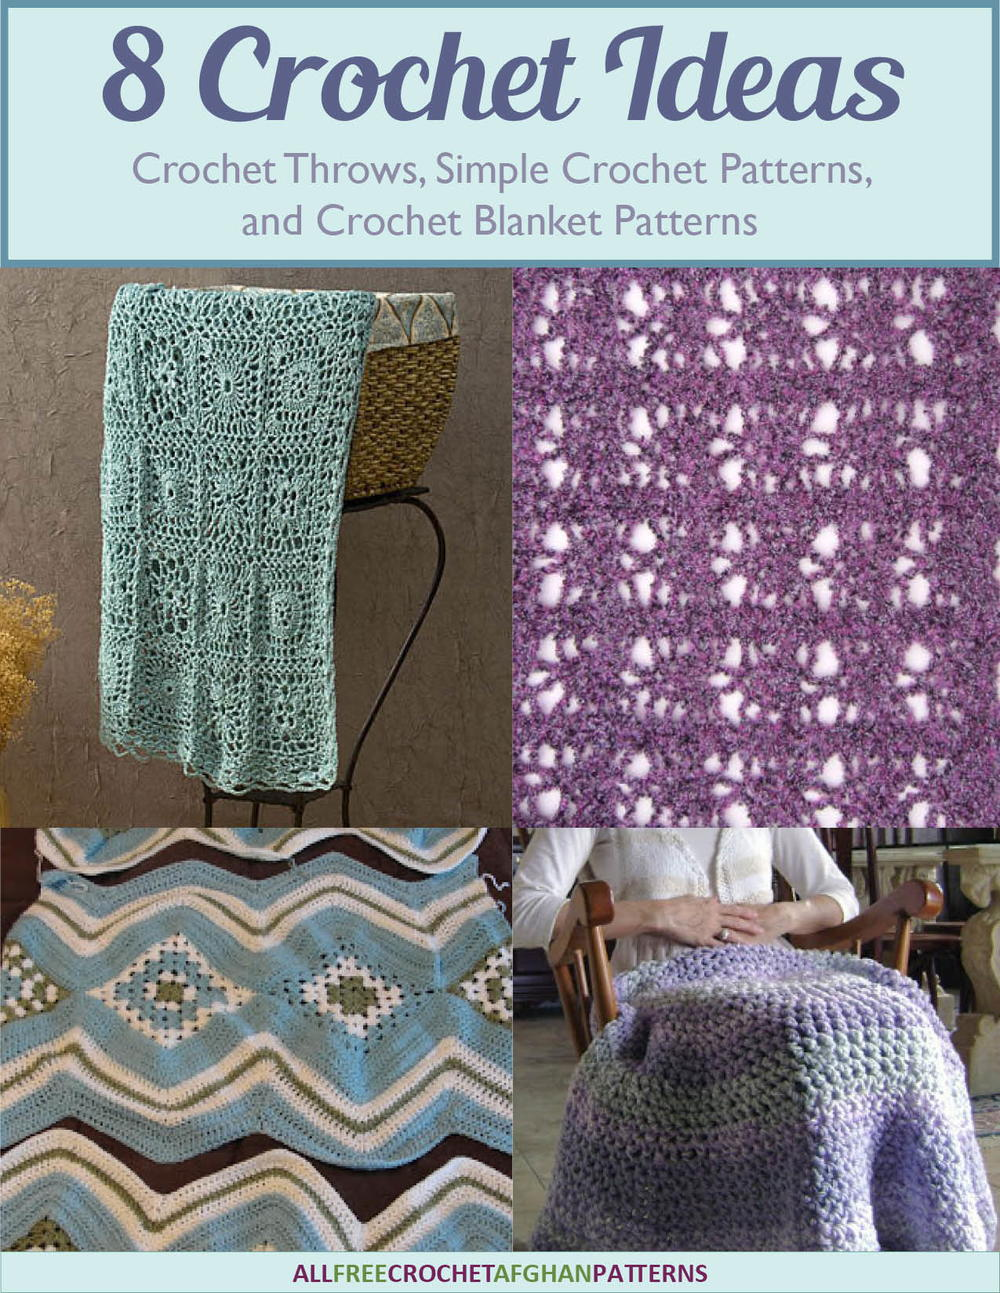 8 Crochet Ideas for Crochet Throws, Simple Crochet Patterns, and ...